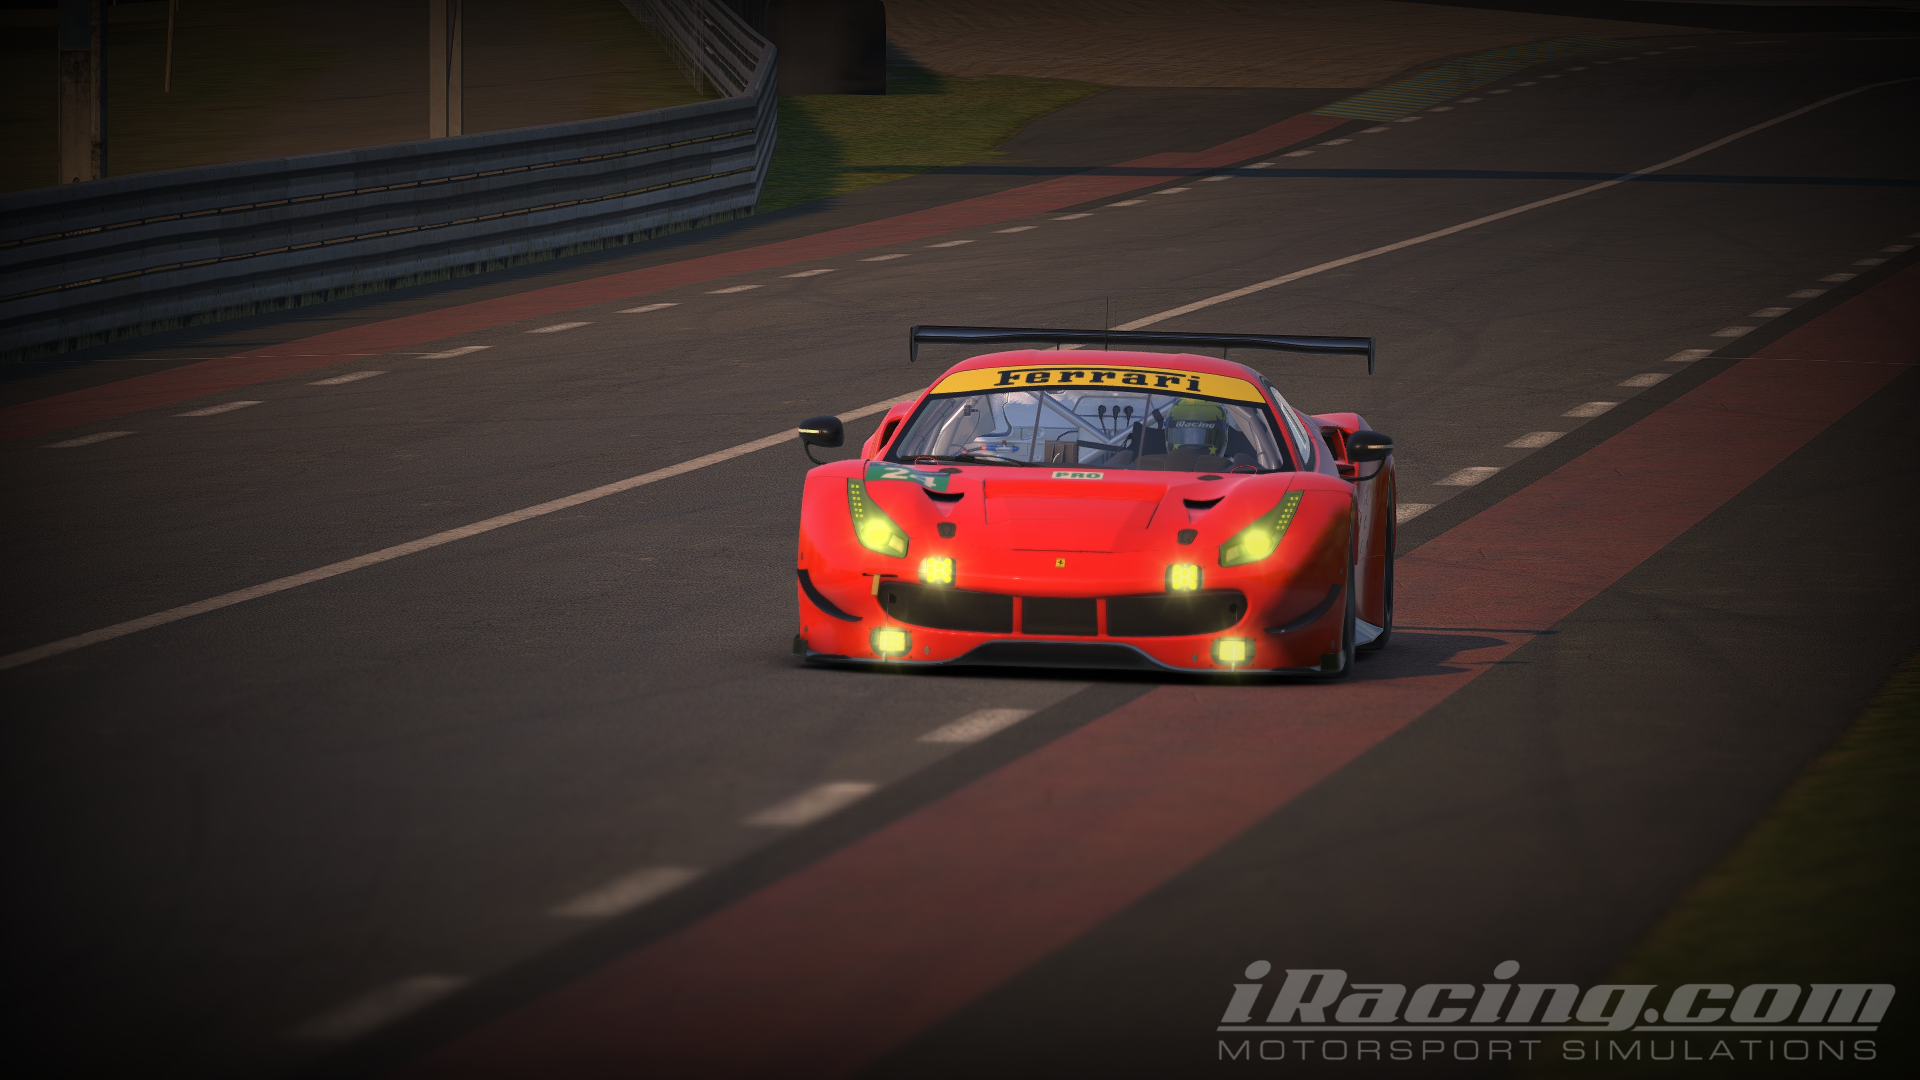 iRacing Season 3 Build Available Together with Two New GTE